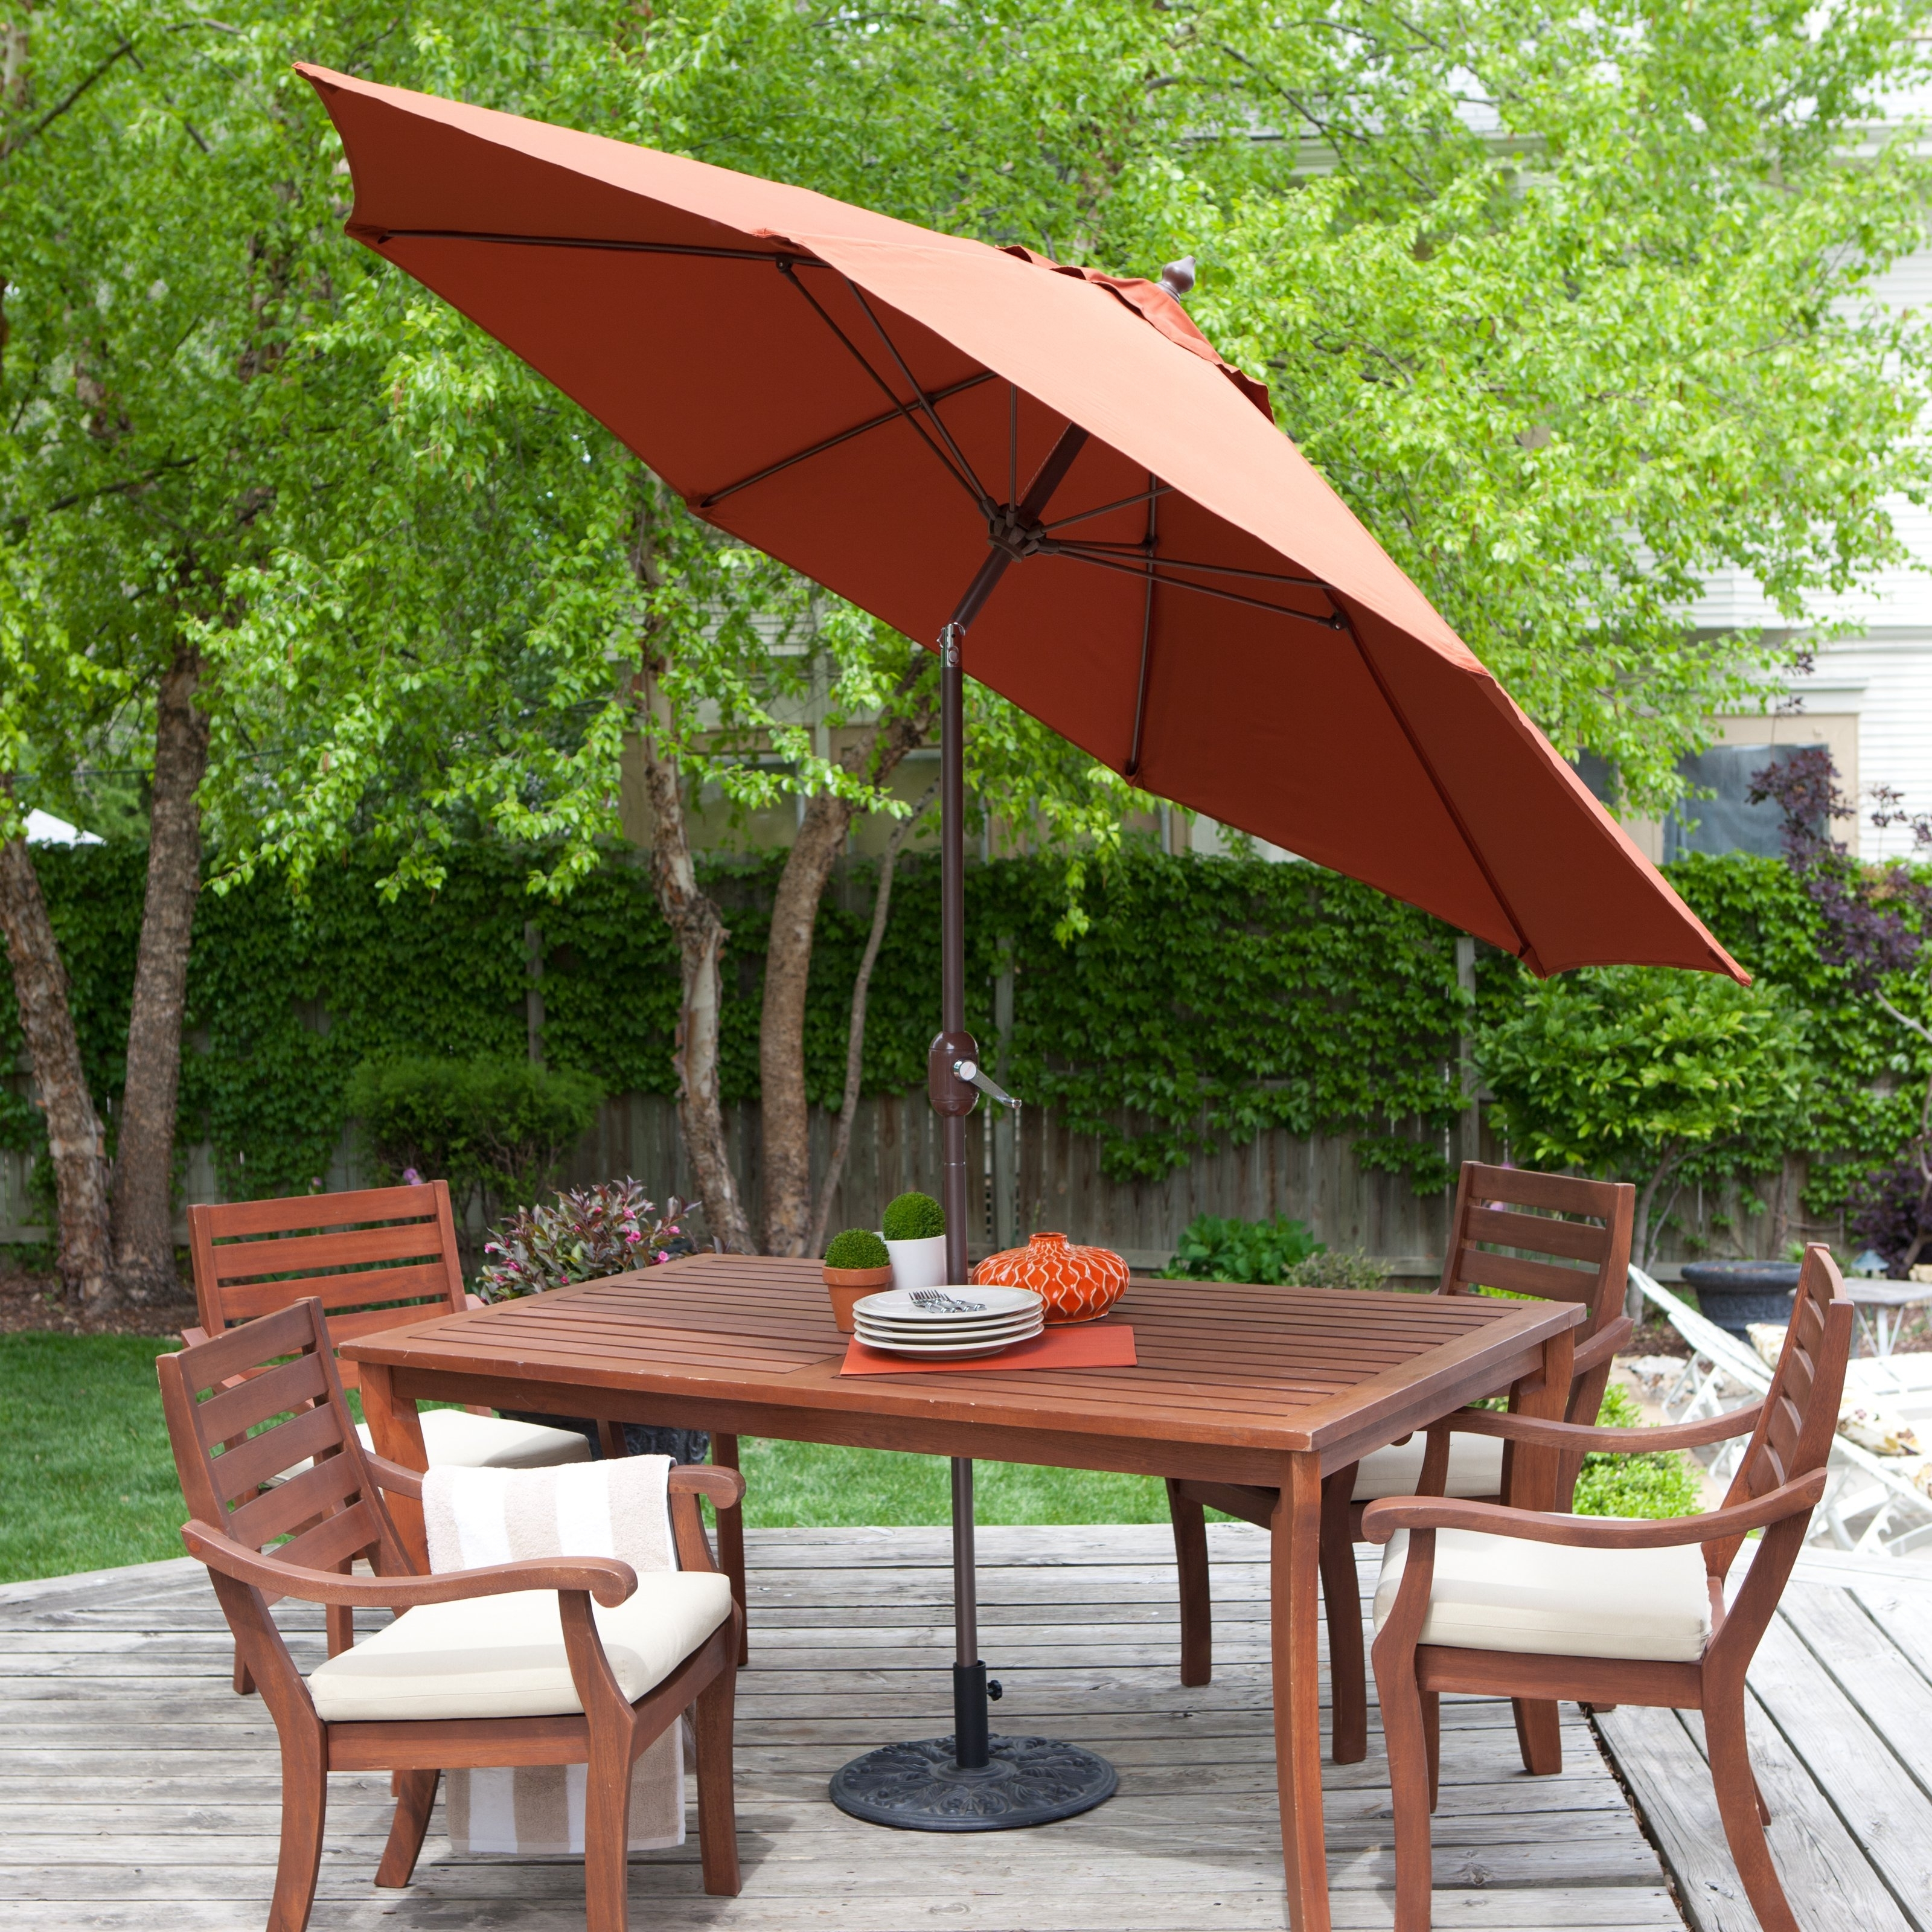 Sunbrella Outdoor Patio Umbrellas For Most Up To Date Galtech Sunbrella 11 Ft (View 10 of 20)